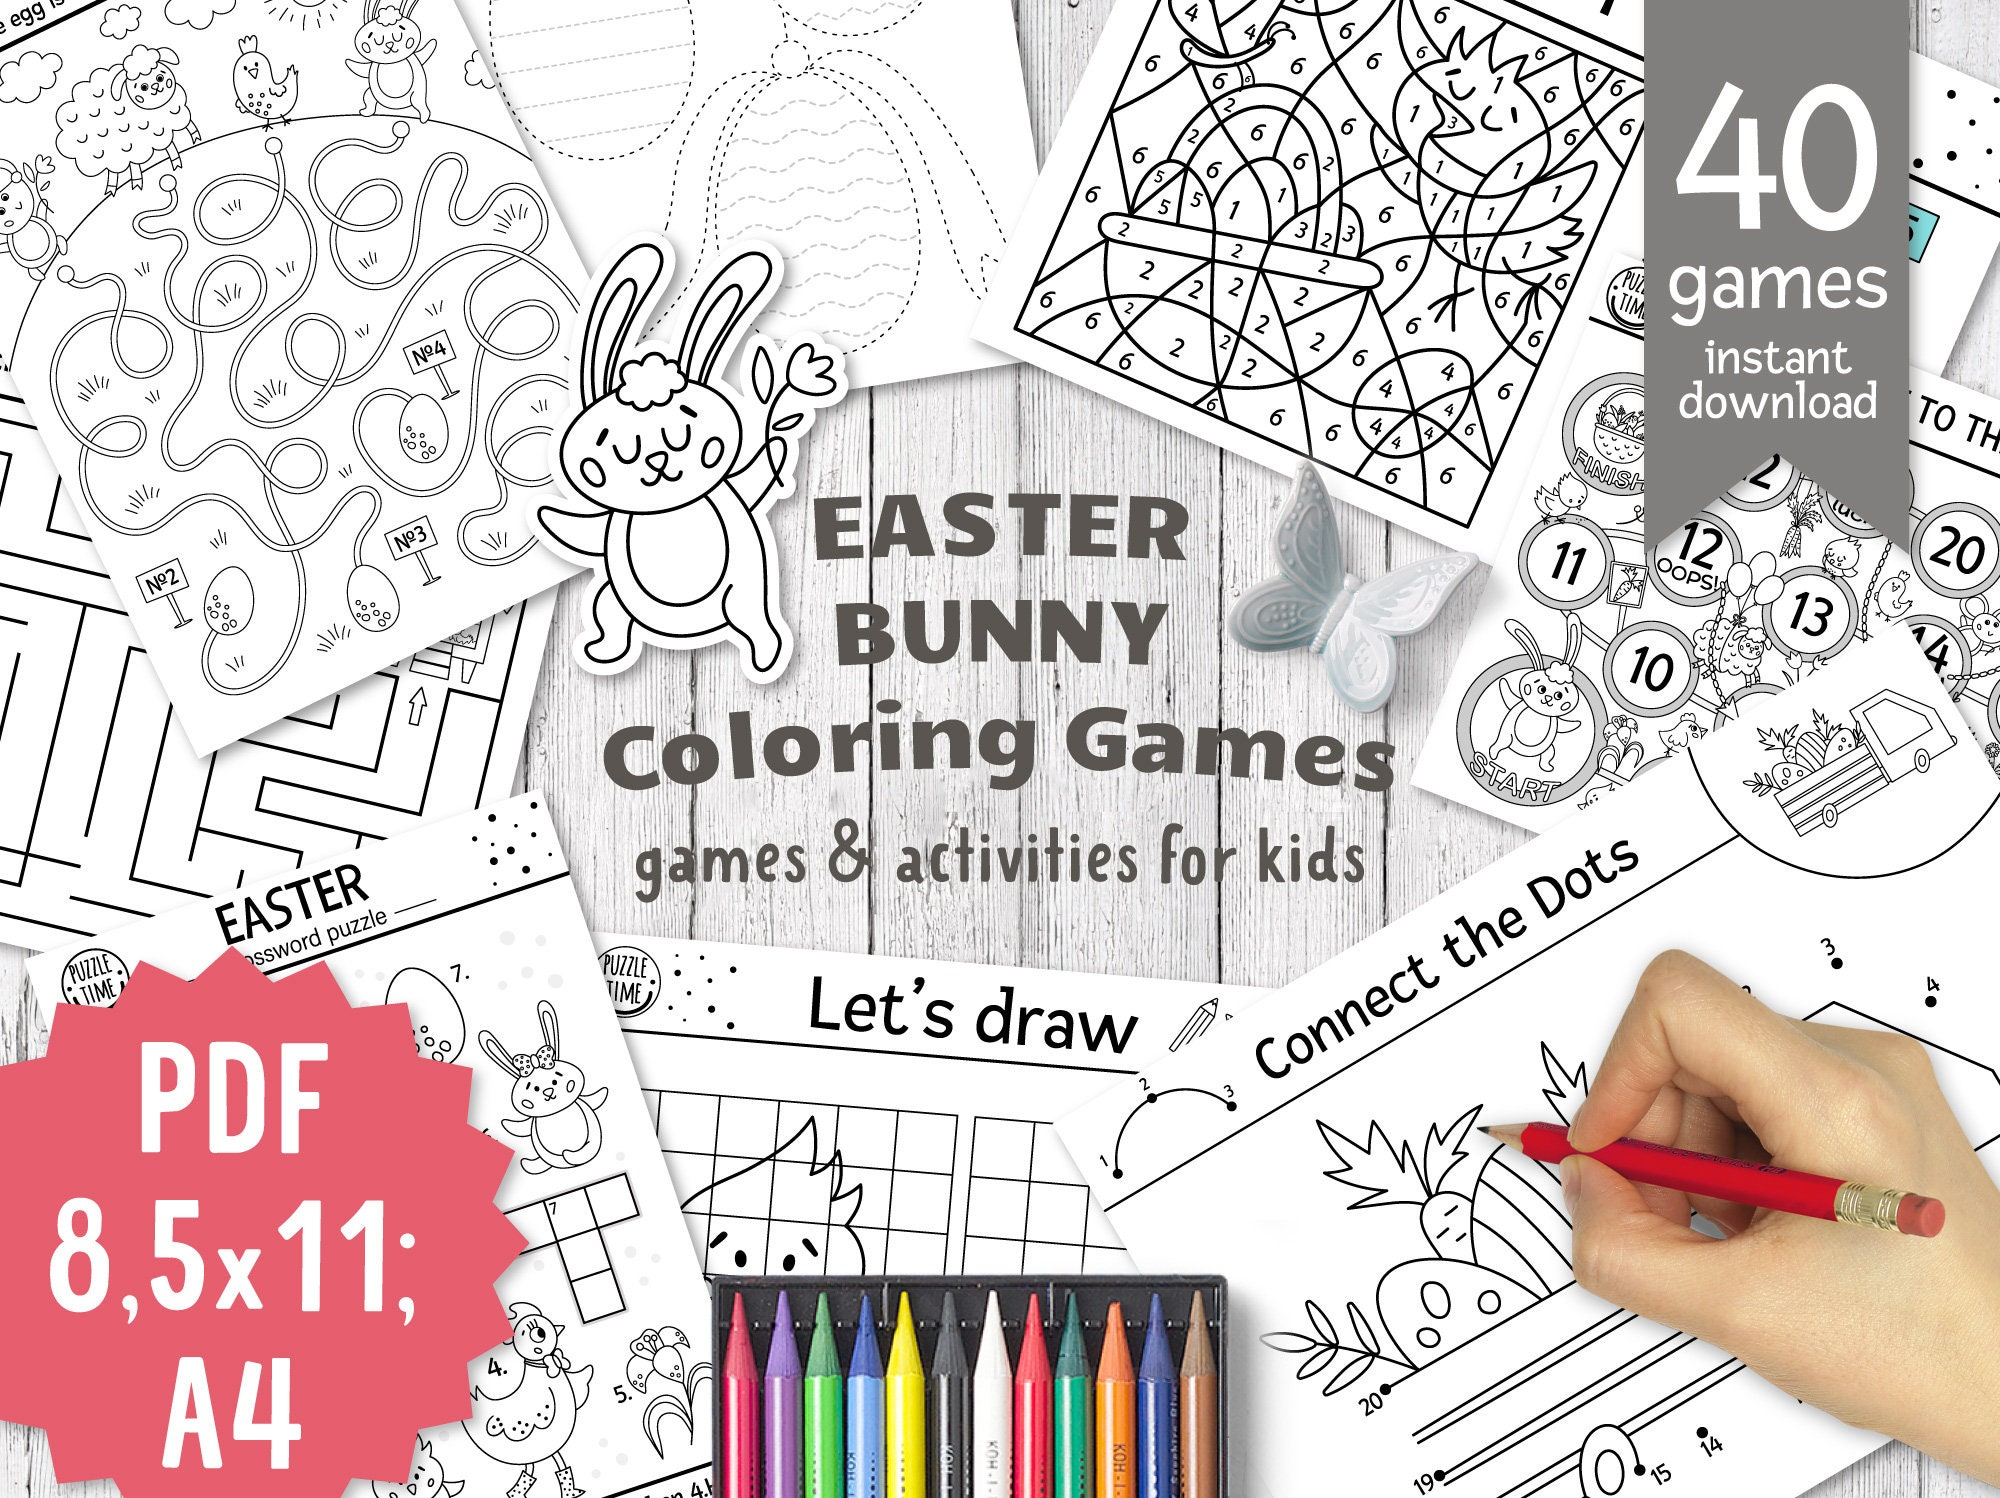 Easter coloring pages, colouring games for kids, Spring activity worksheets  with Easter Bunny, Easter printable pack, Easter party games